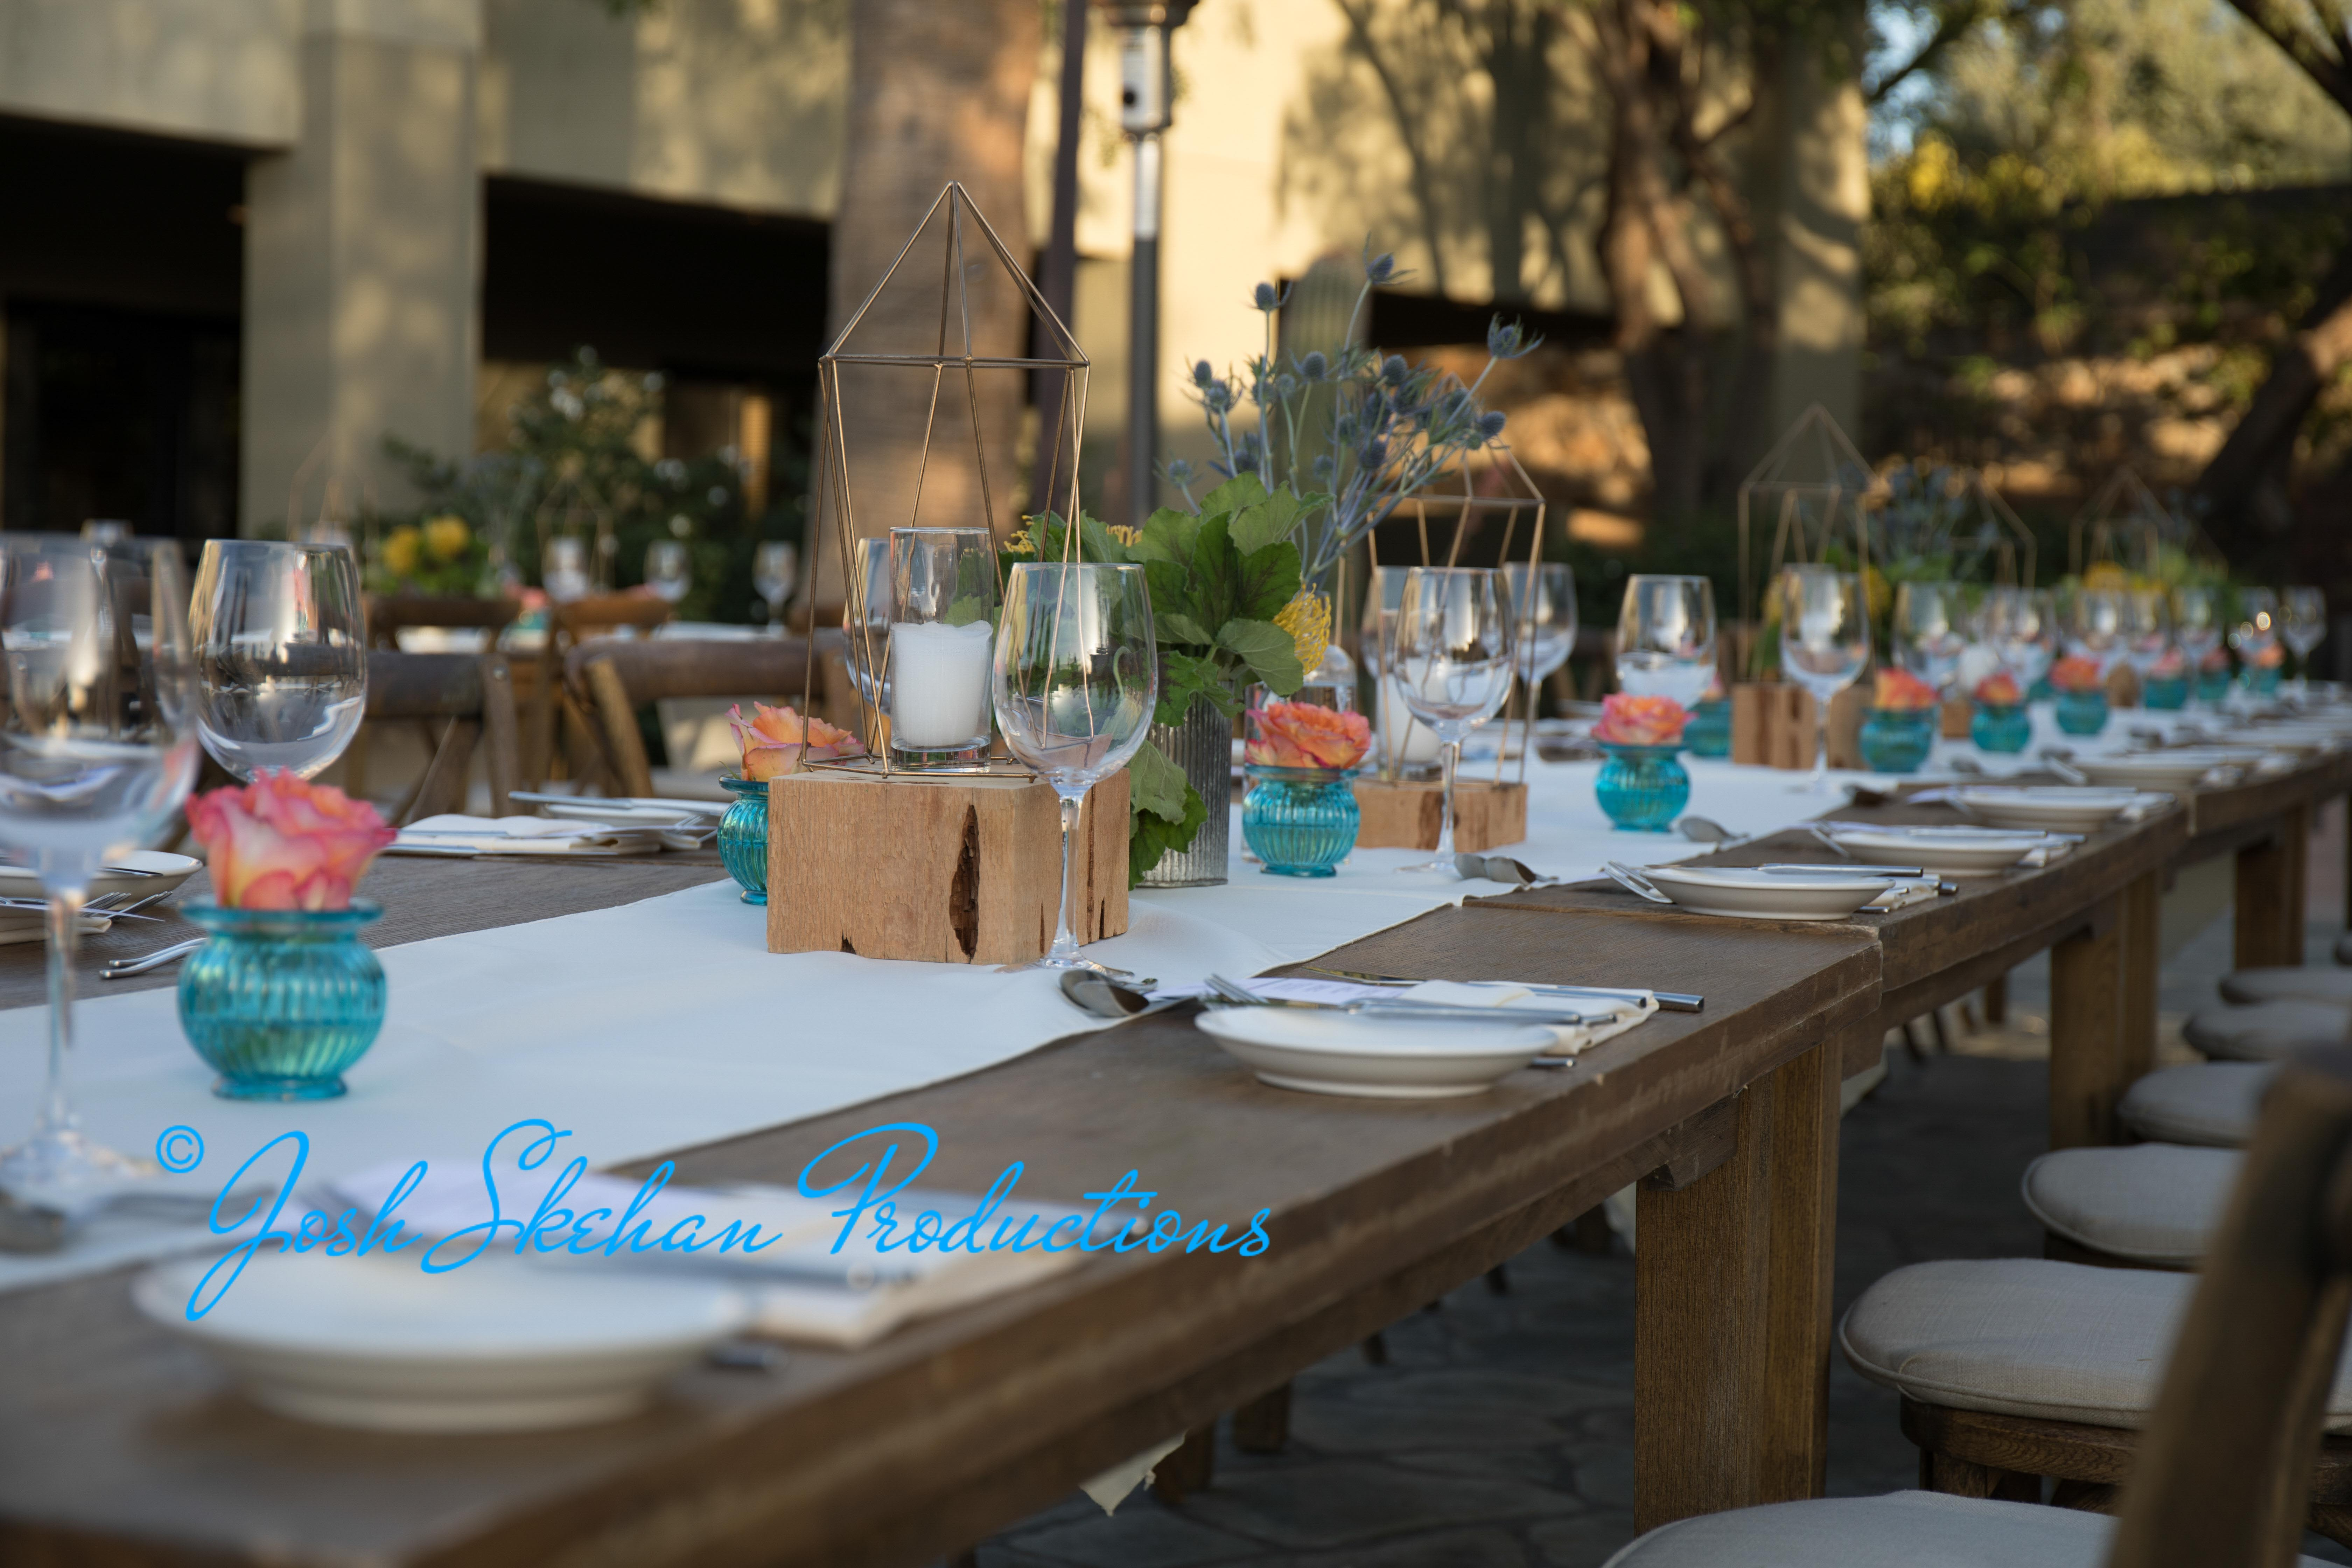 129 event photographer - scottsdale - di